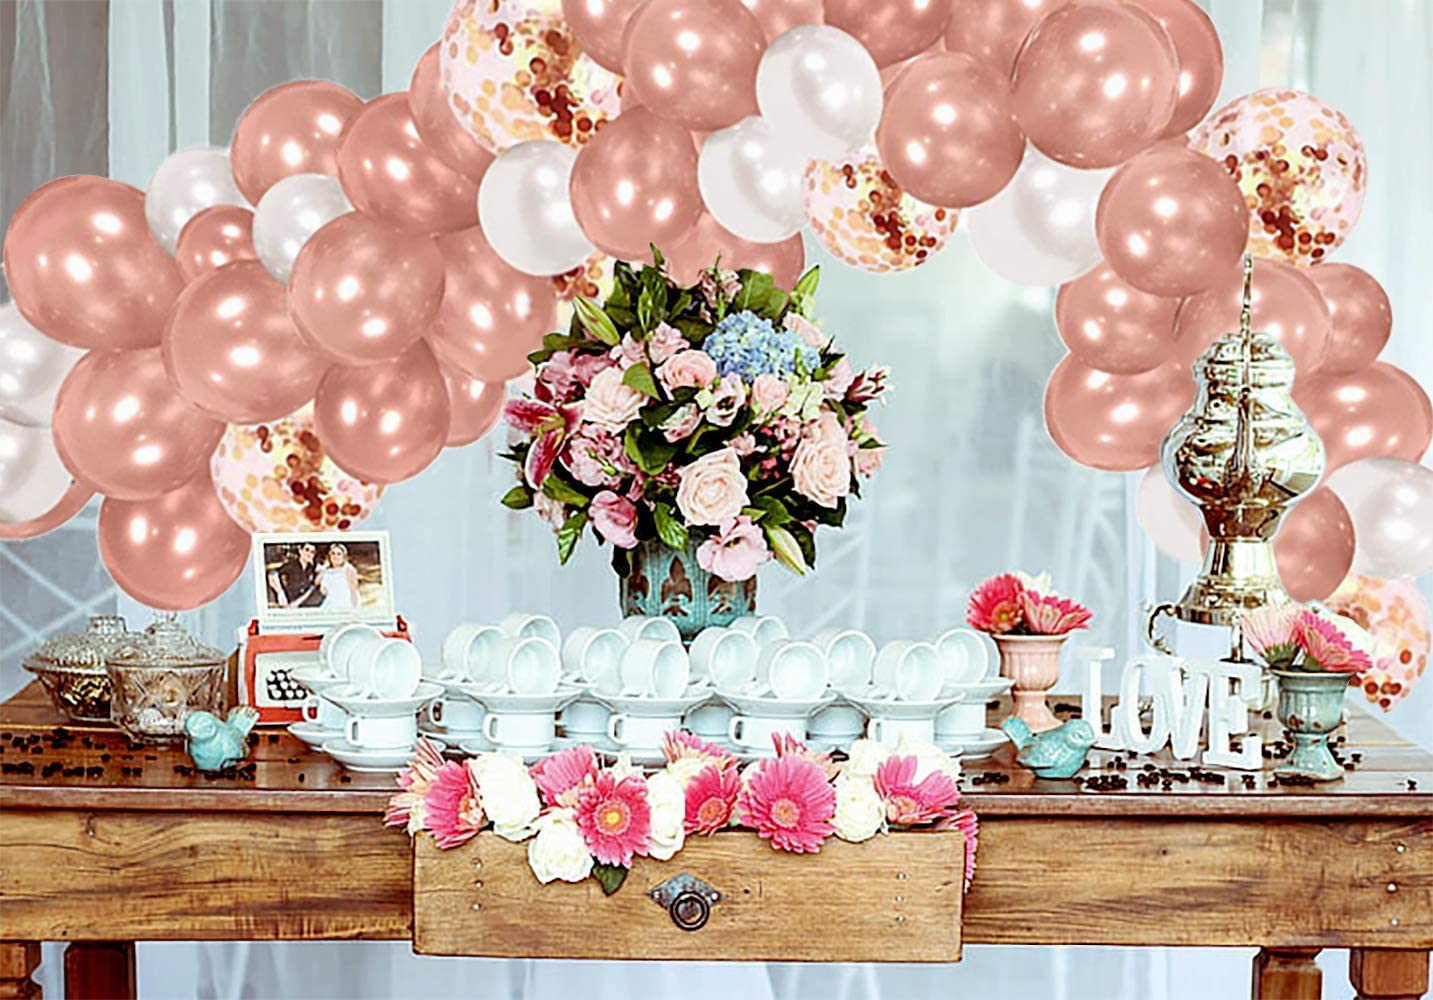 Balloon Arch Kit with A Balloon Chain and a Glue Dot Congratulation Party or Christmas Decoration Balloons Arches Composition 130Psc Rose Gold Ballon Arch Kit for Wedding Birthday